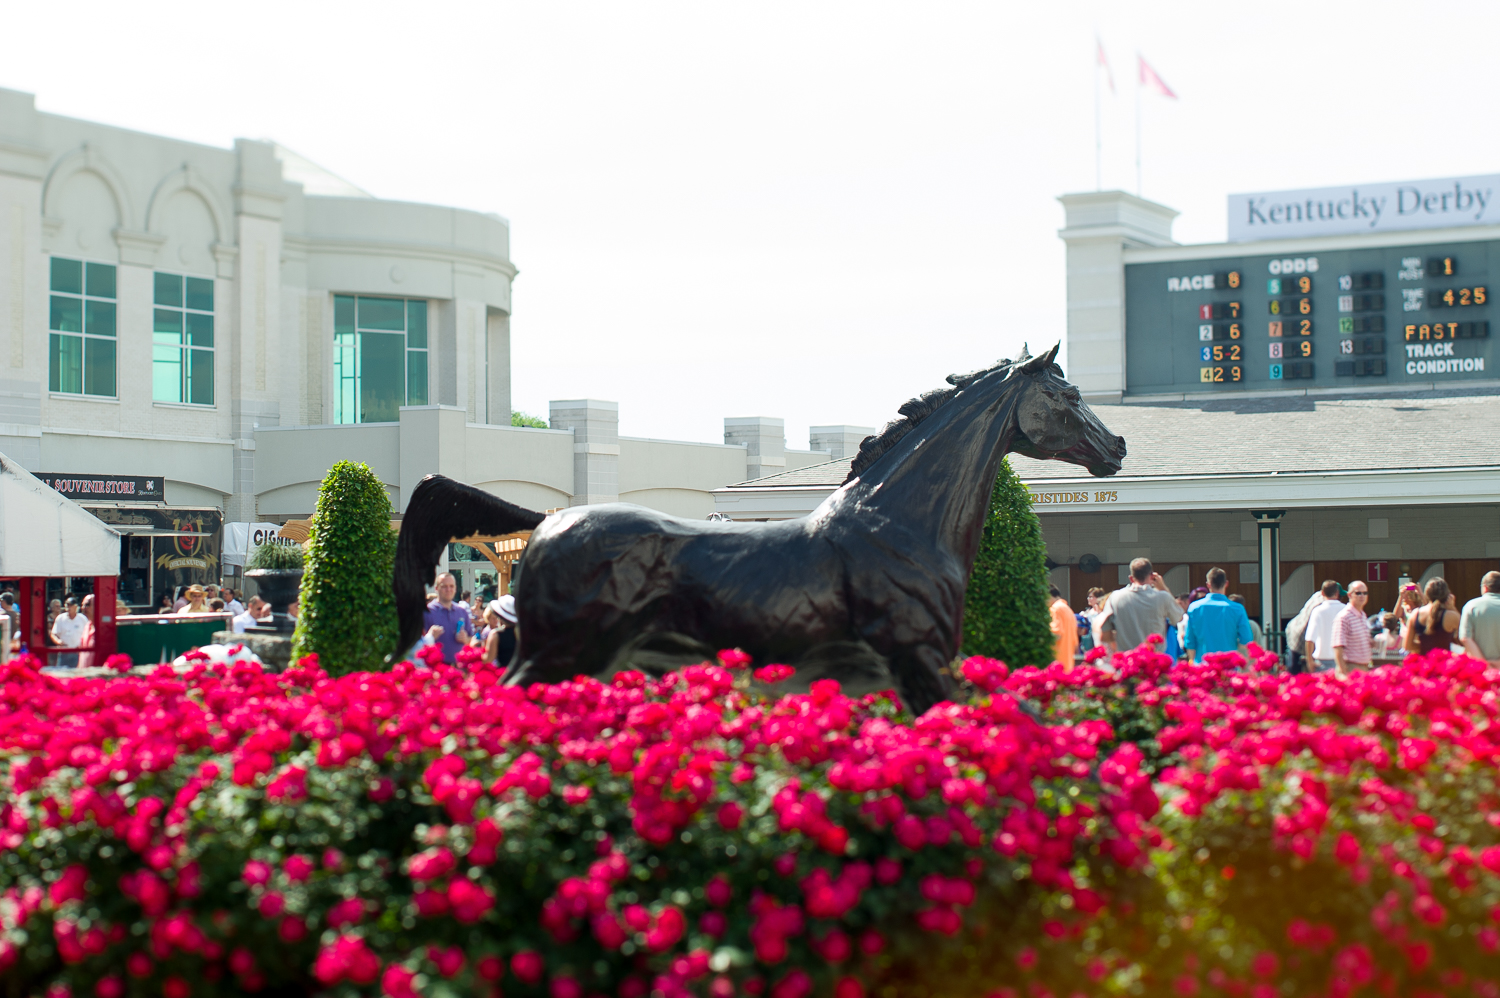 Kentucky Derby-3348.jpg